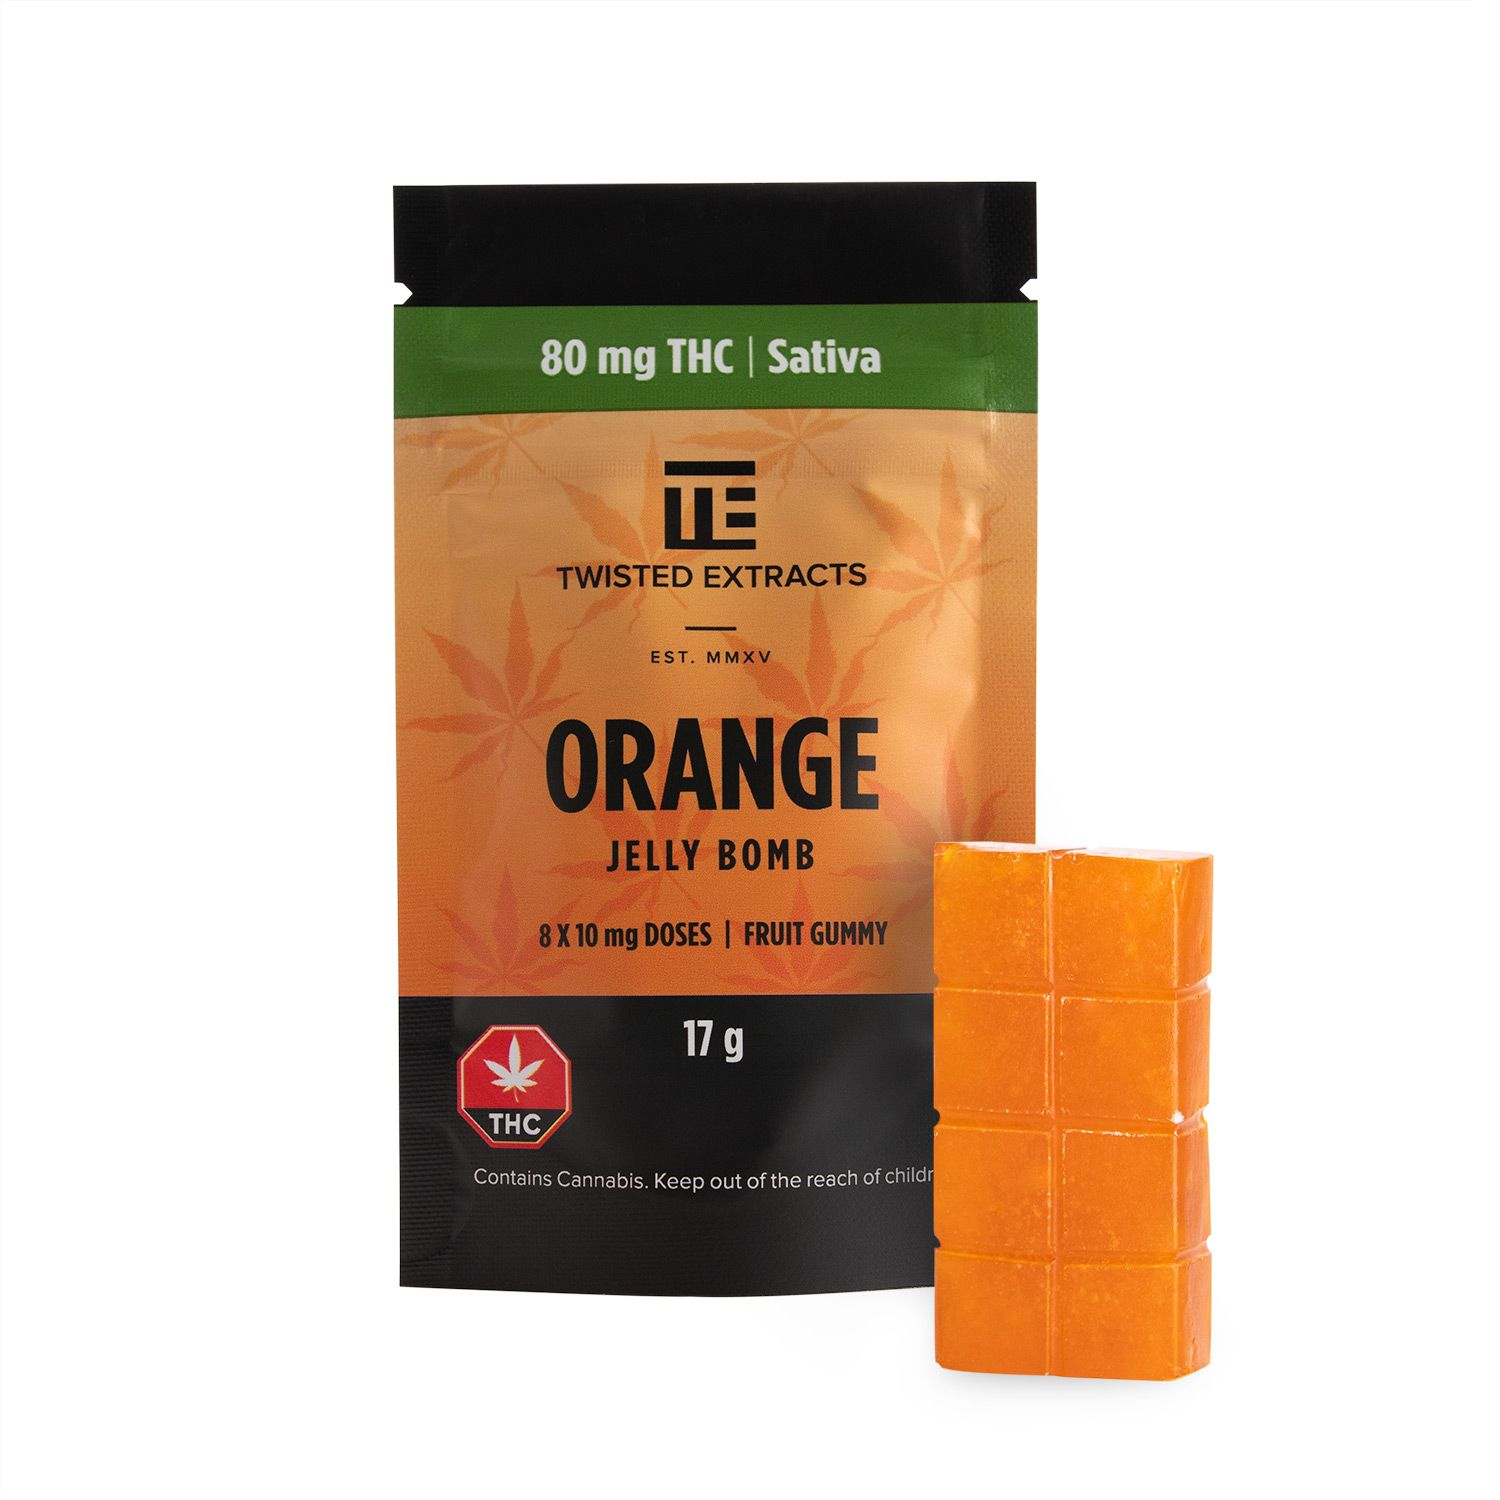 Twisted Extracts – Orange Jelly Bombs : 80mg THC (SATIVA)